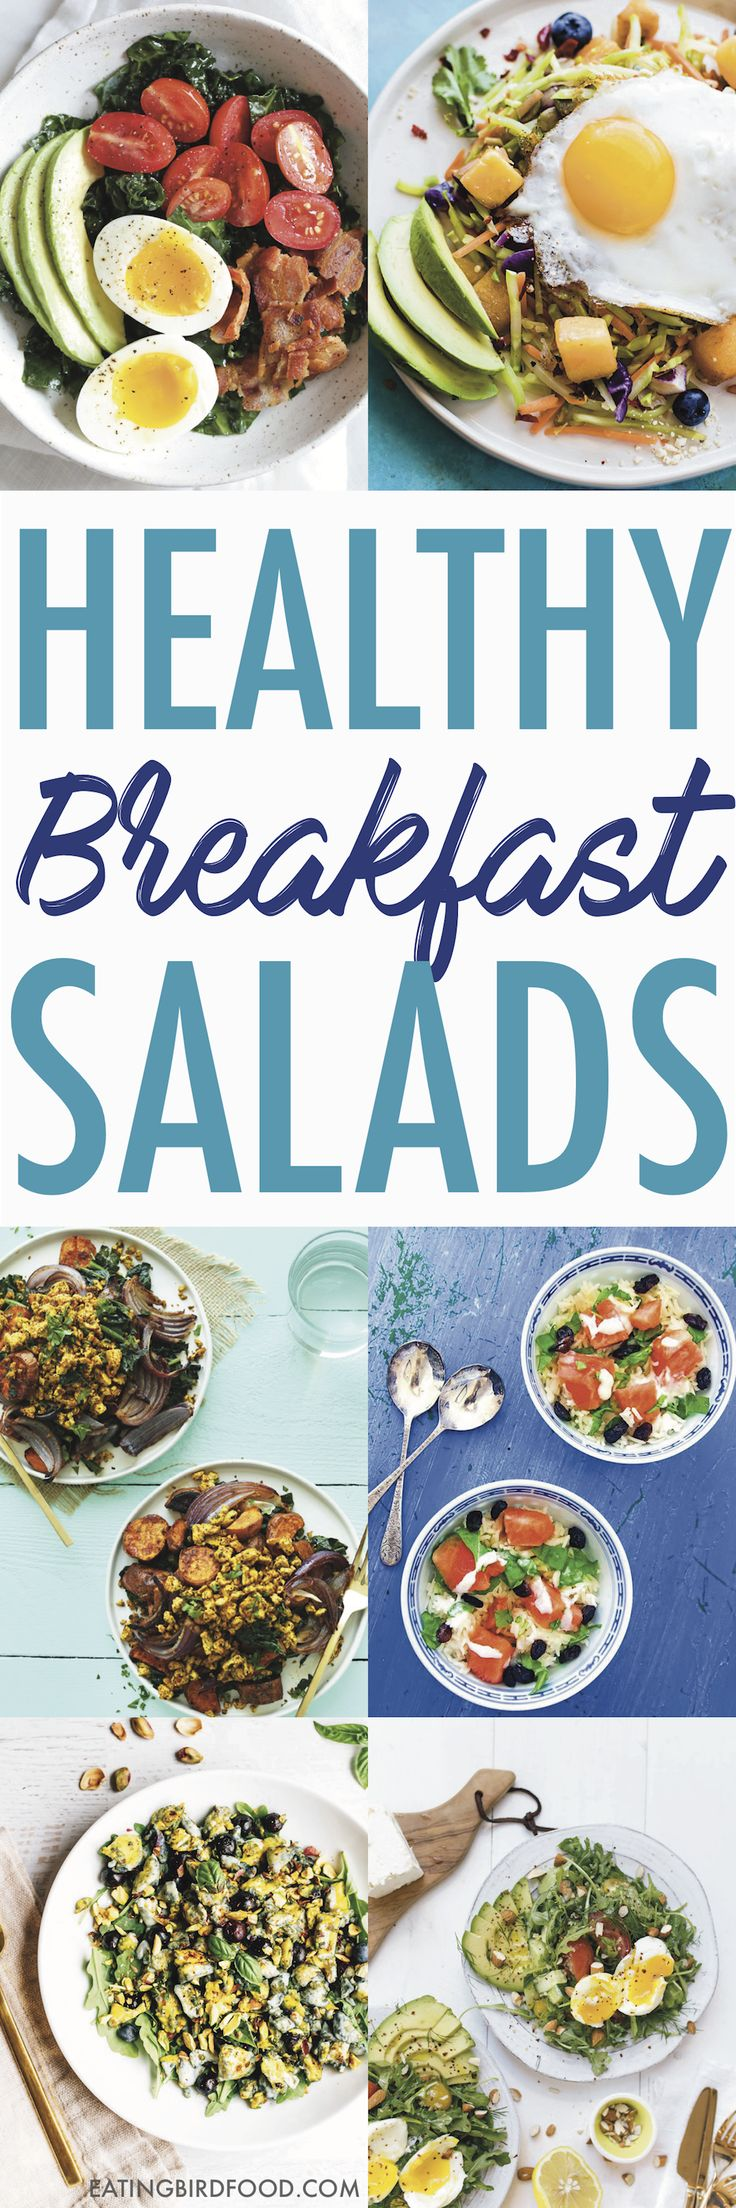 Breakfast Salads You'll Crave